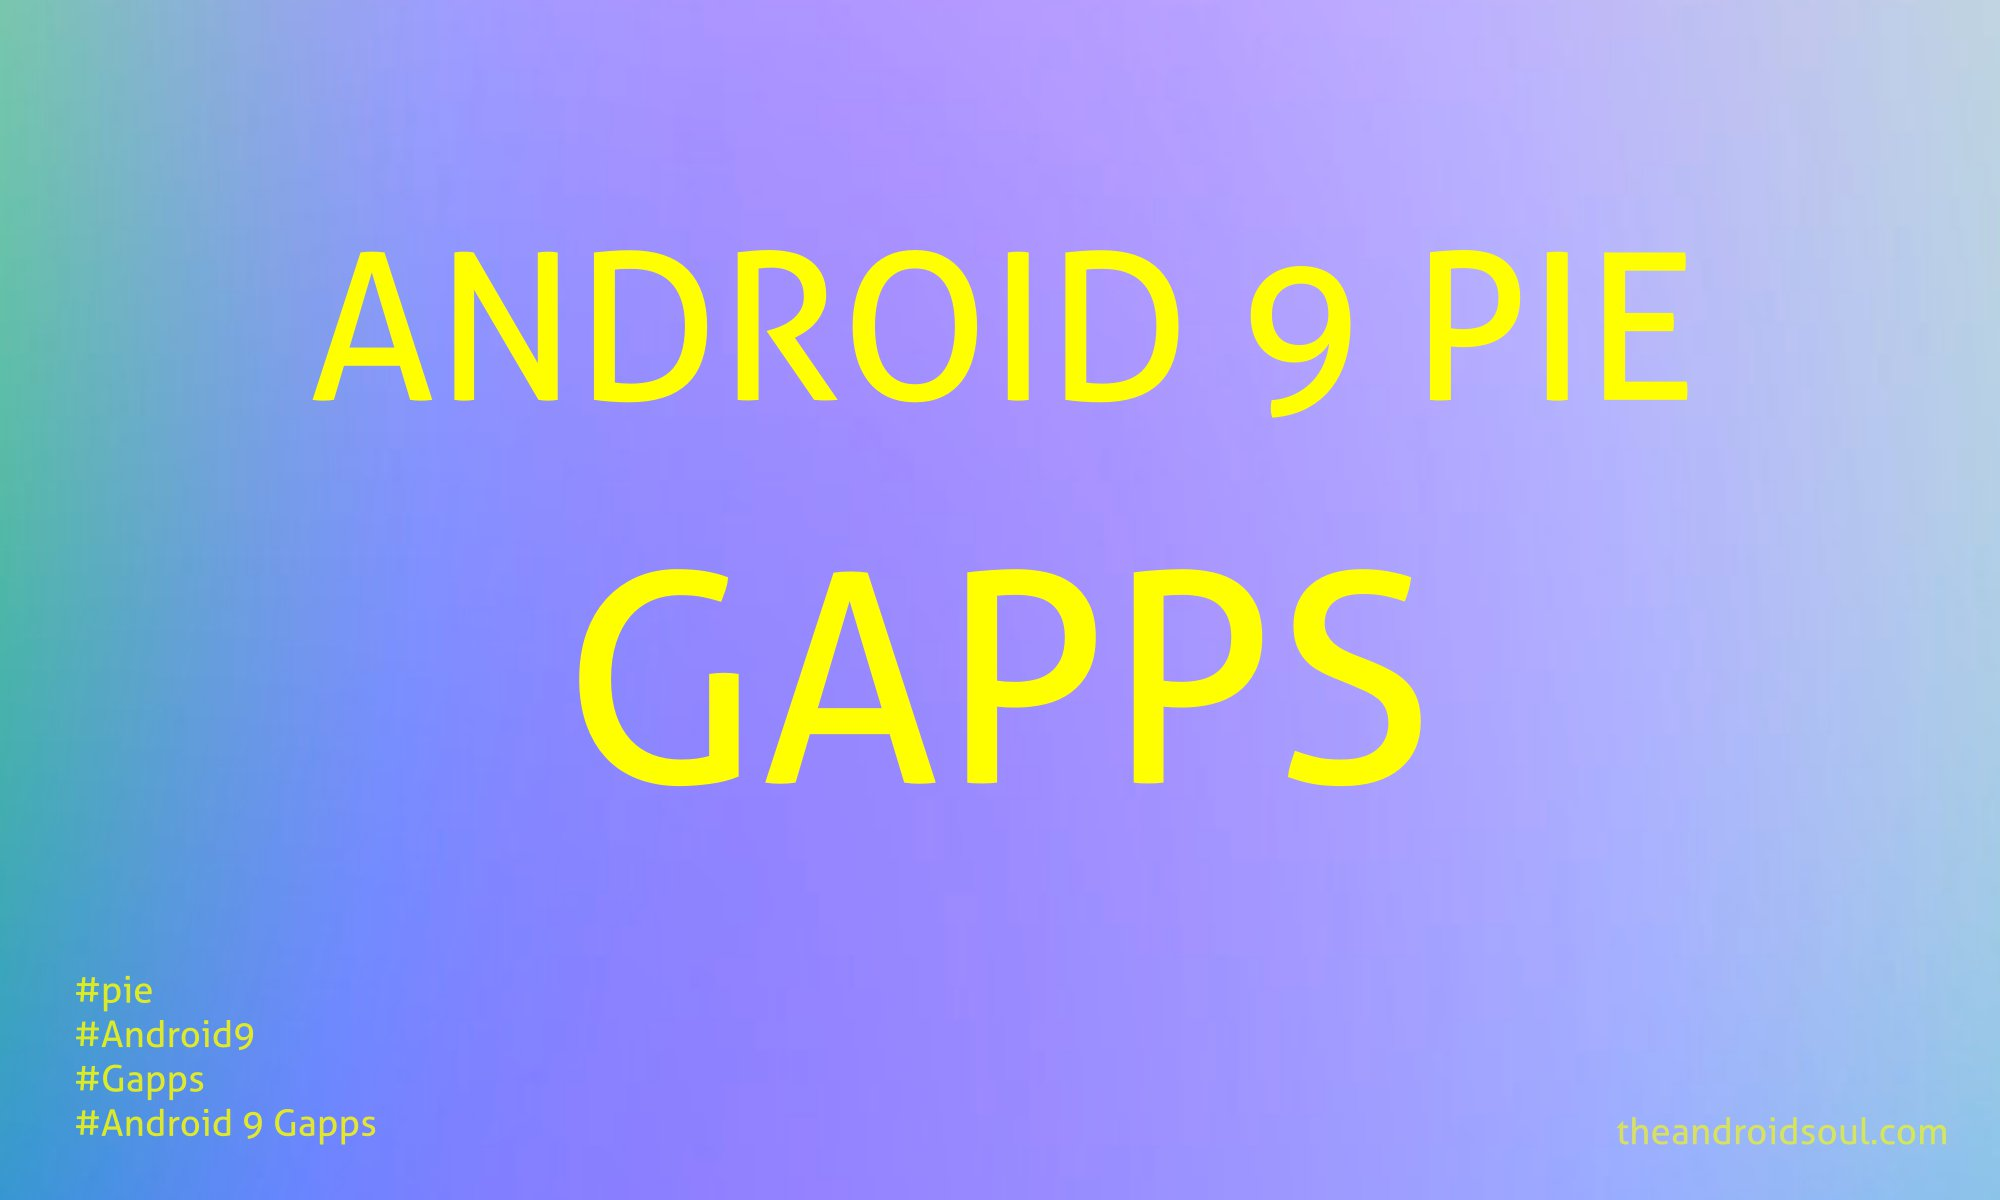 android 9 pie gapps